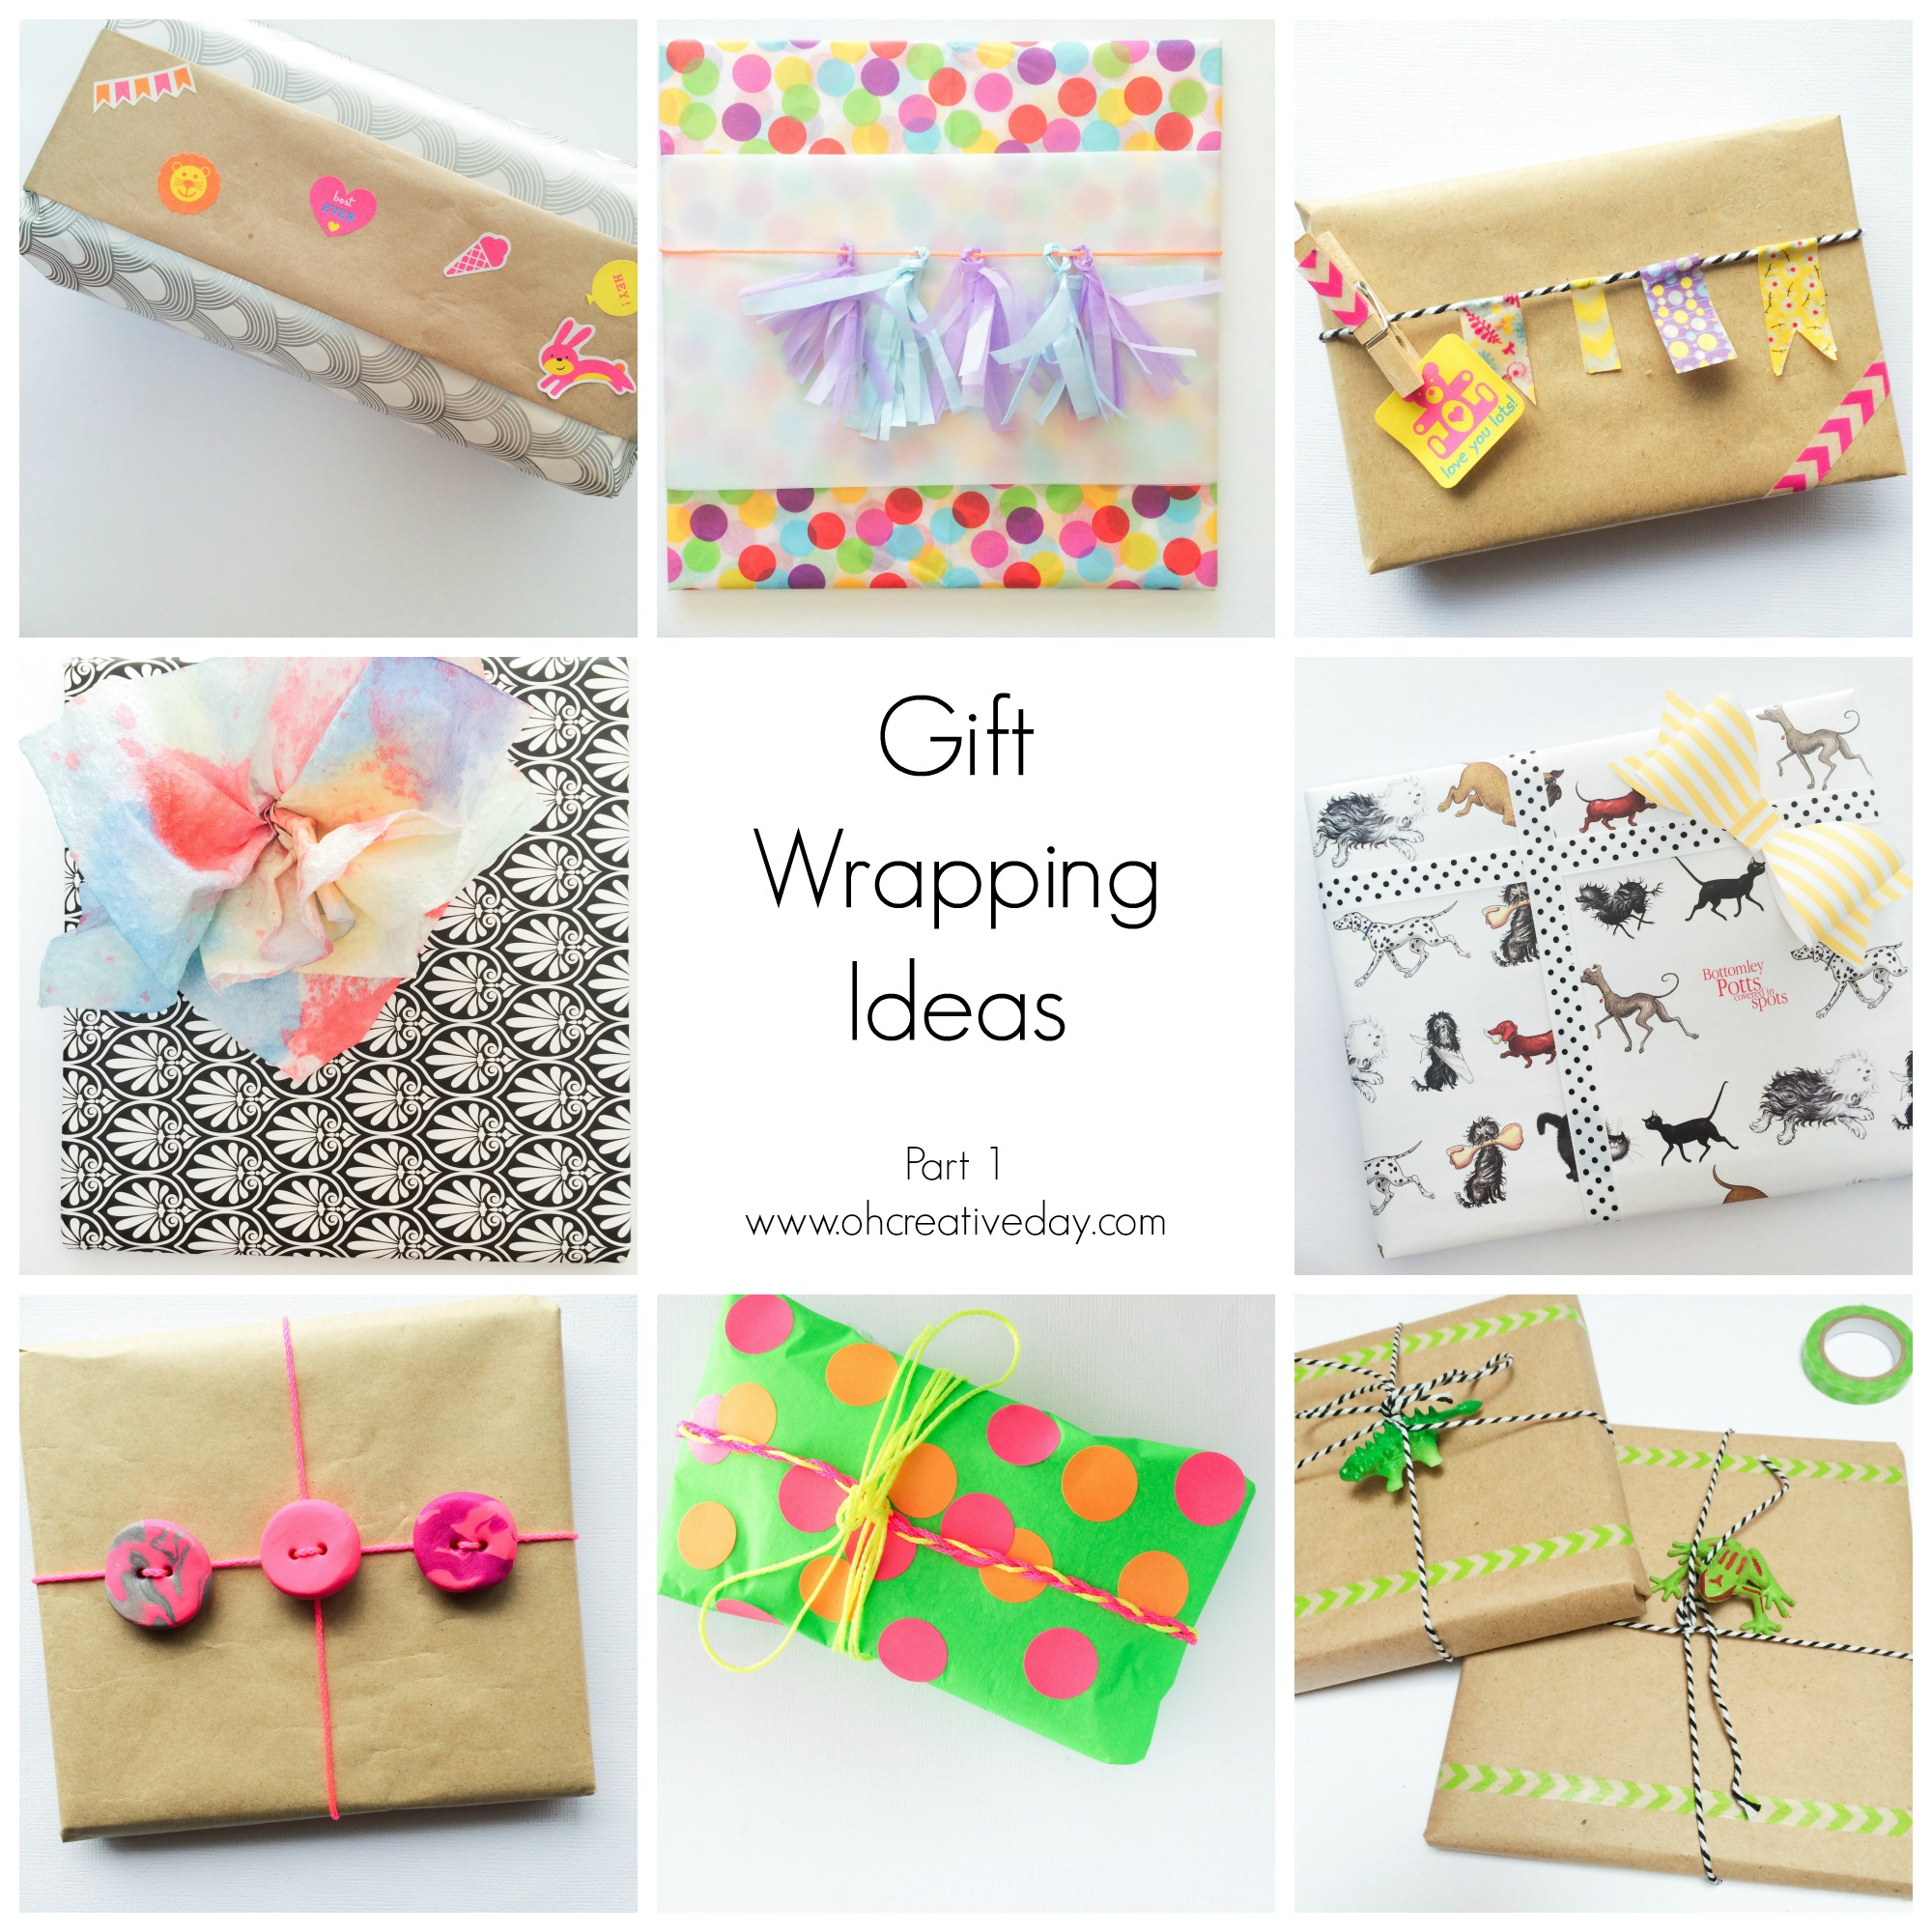 Gift Wrapping Ideas Part 1